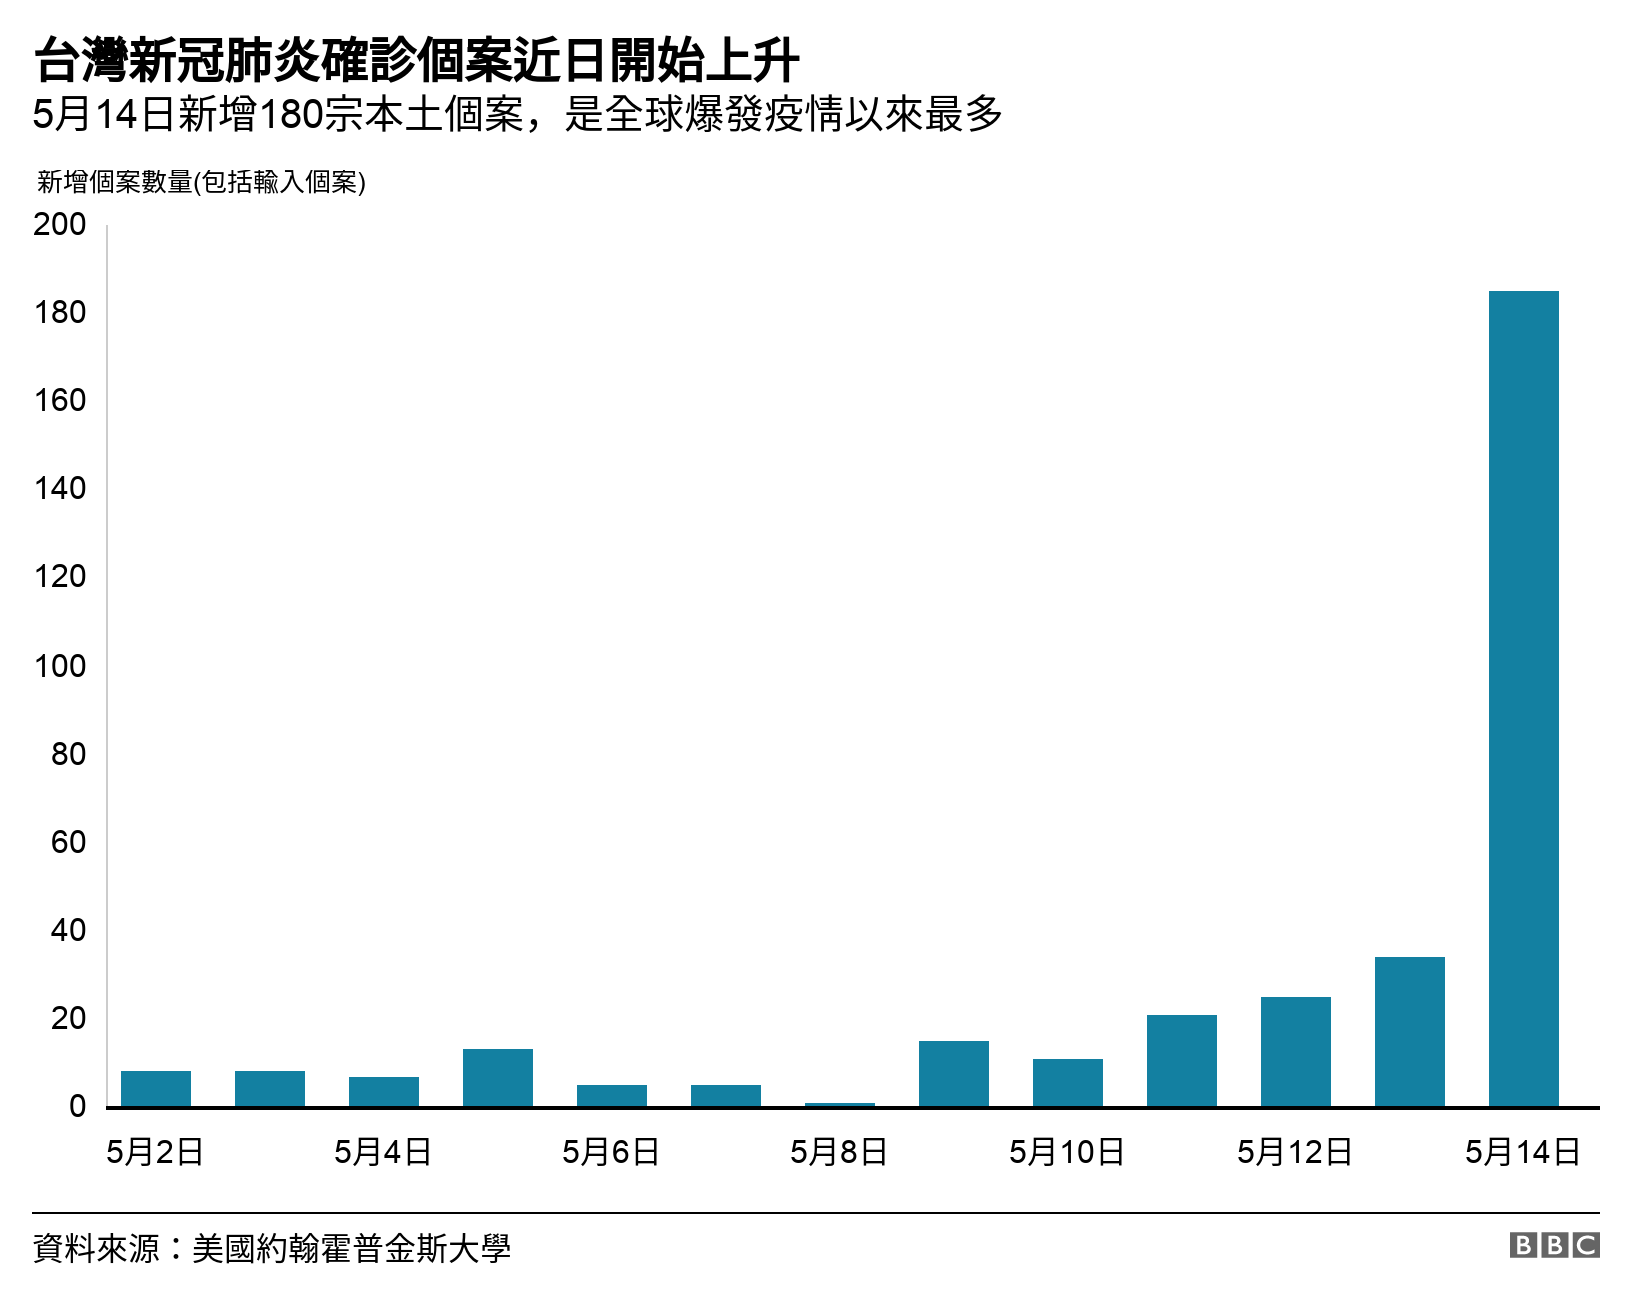 The number of confirmed cases of new crown pneumonia in Taiwan has recently begun to rise.  On May 14, there were 180 new local lawsuits, following the global outbreak ...